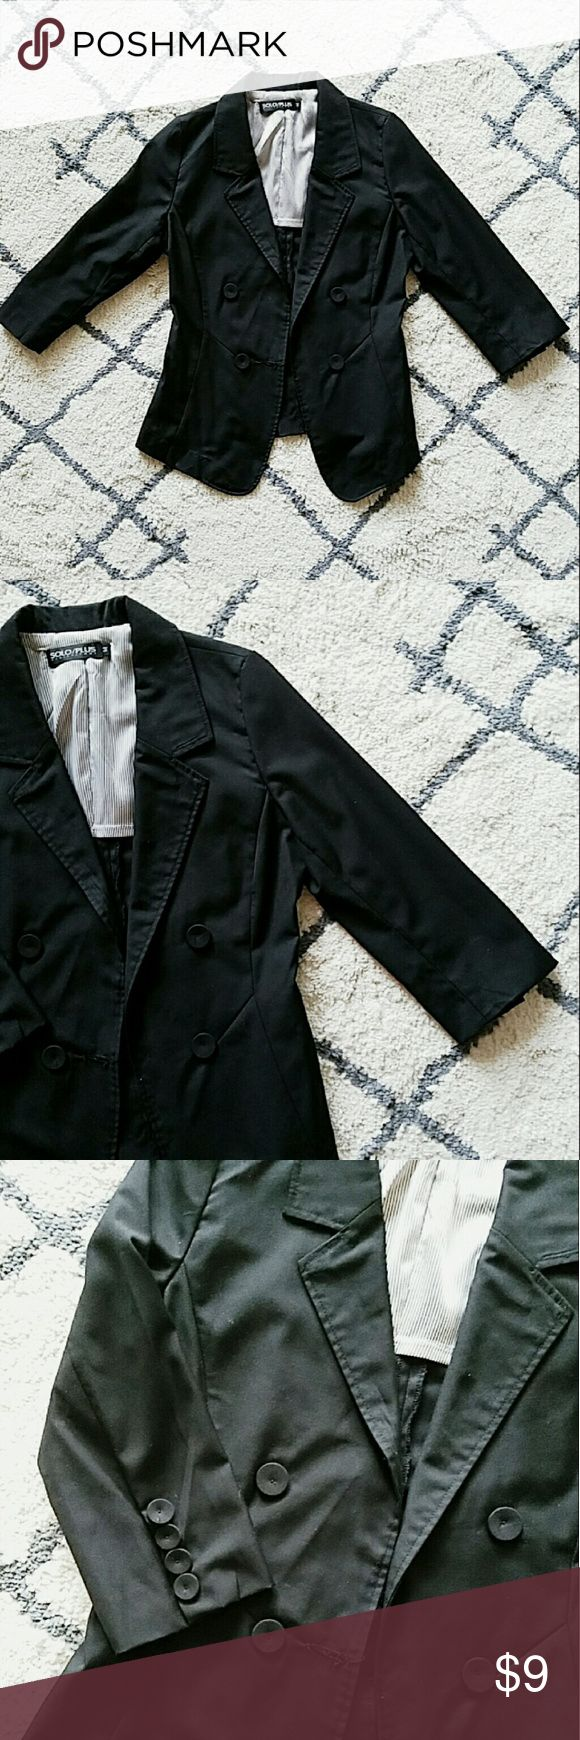 Black 3/4 sleeves button blazer size s light weight jacket, can be paired with trousers or jeans. worn a handful times, very good condition.  measurements: armpit to armpit 34in, shoulder32in, length 23approx. fits xs/s ladies Jackets & Coats Blazers